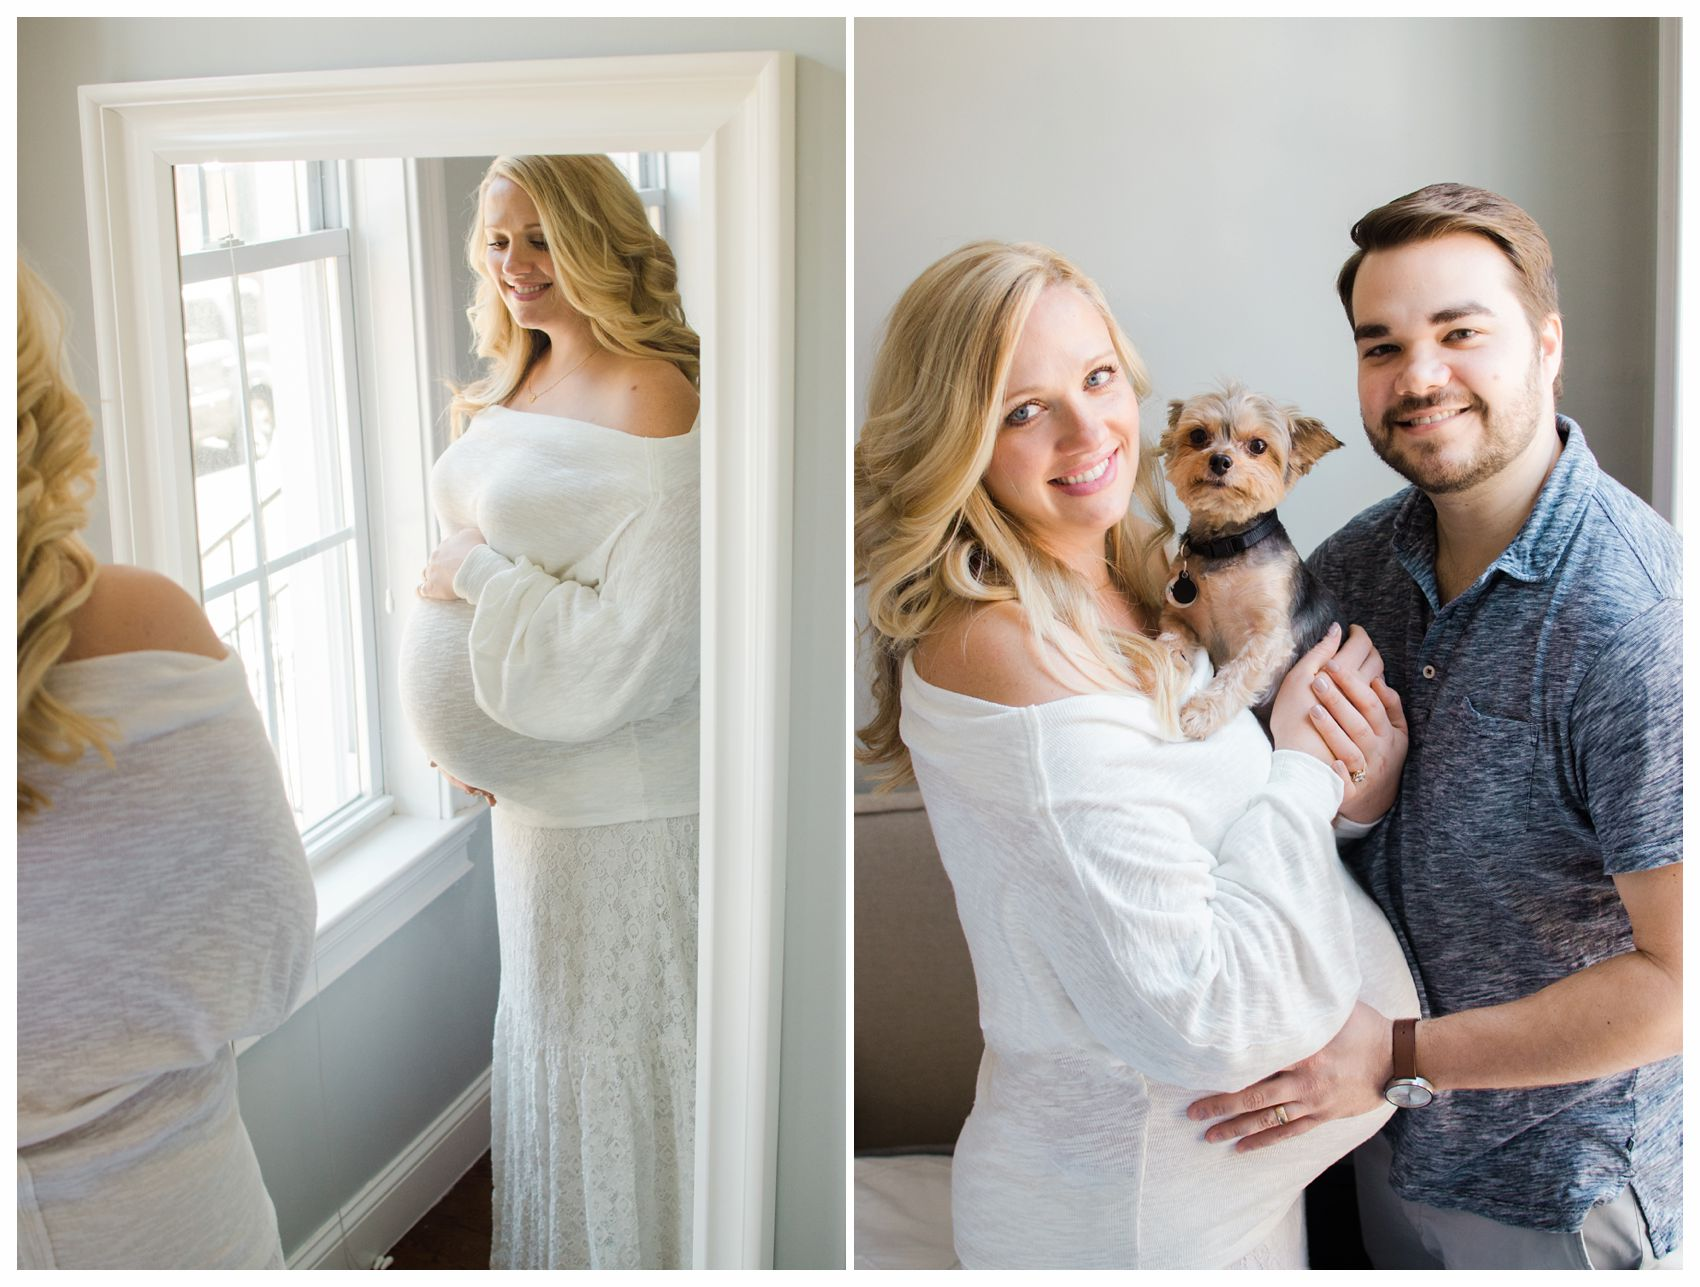 pregnant mom and dad are posing for family portrait with their dog